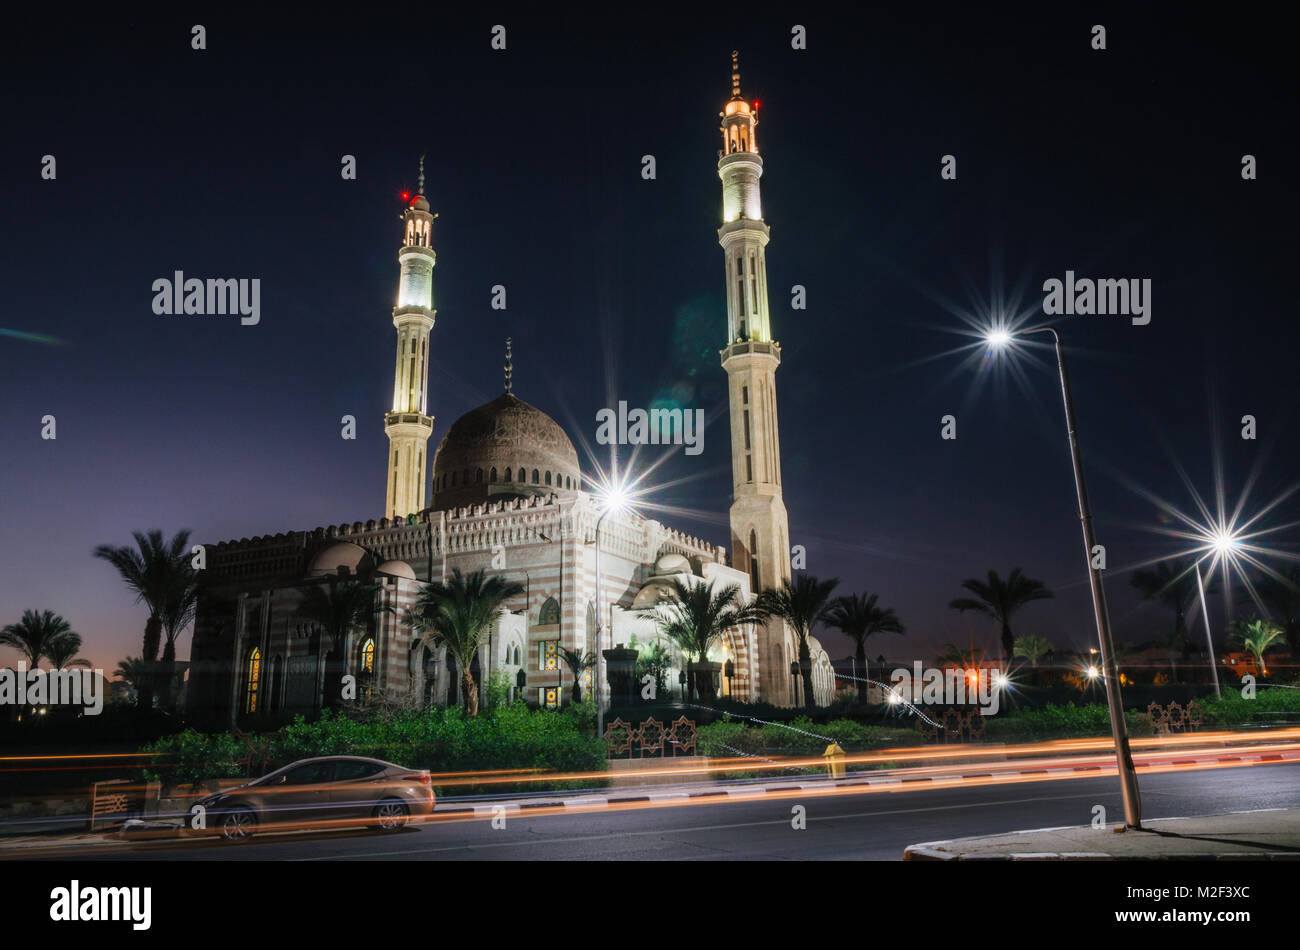 Mosque Masjid al-Mostafa in town of Sharm el Sheikh in Egypt at night illumination - Stock Image